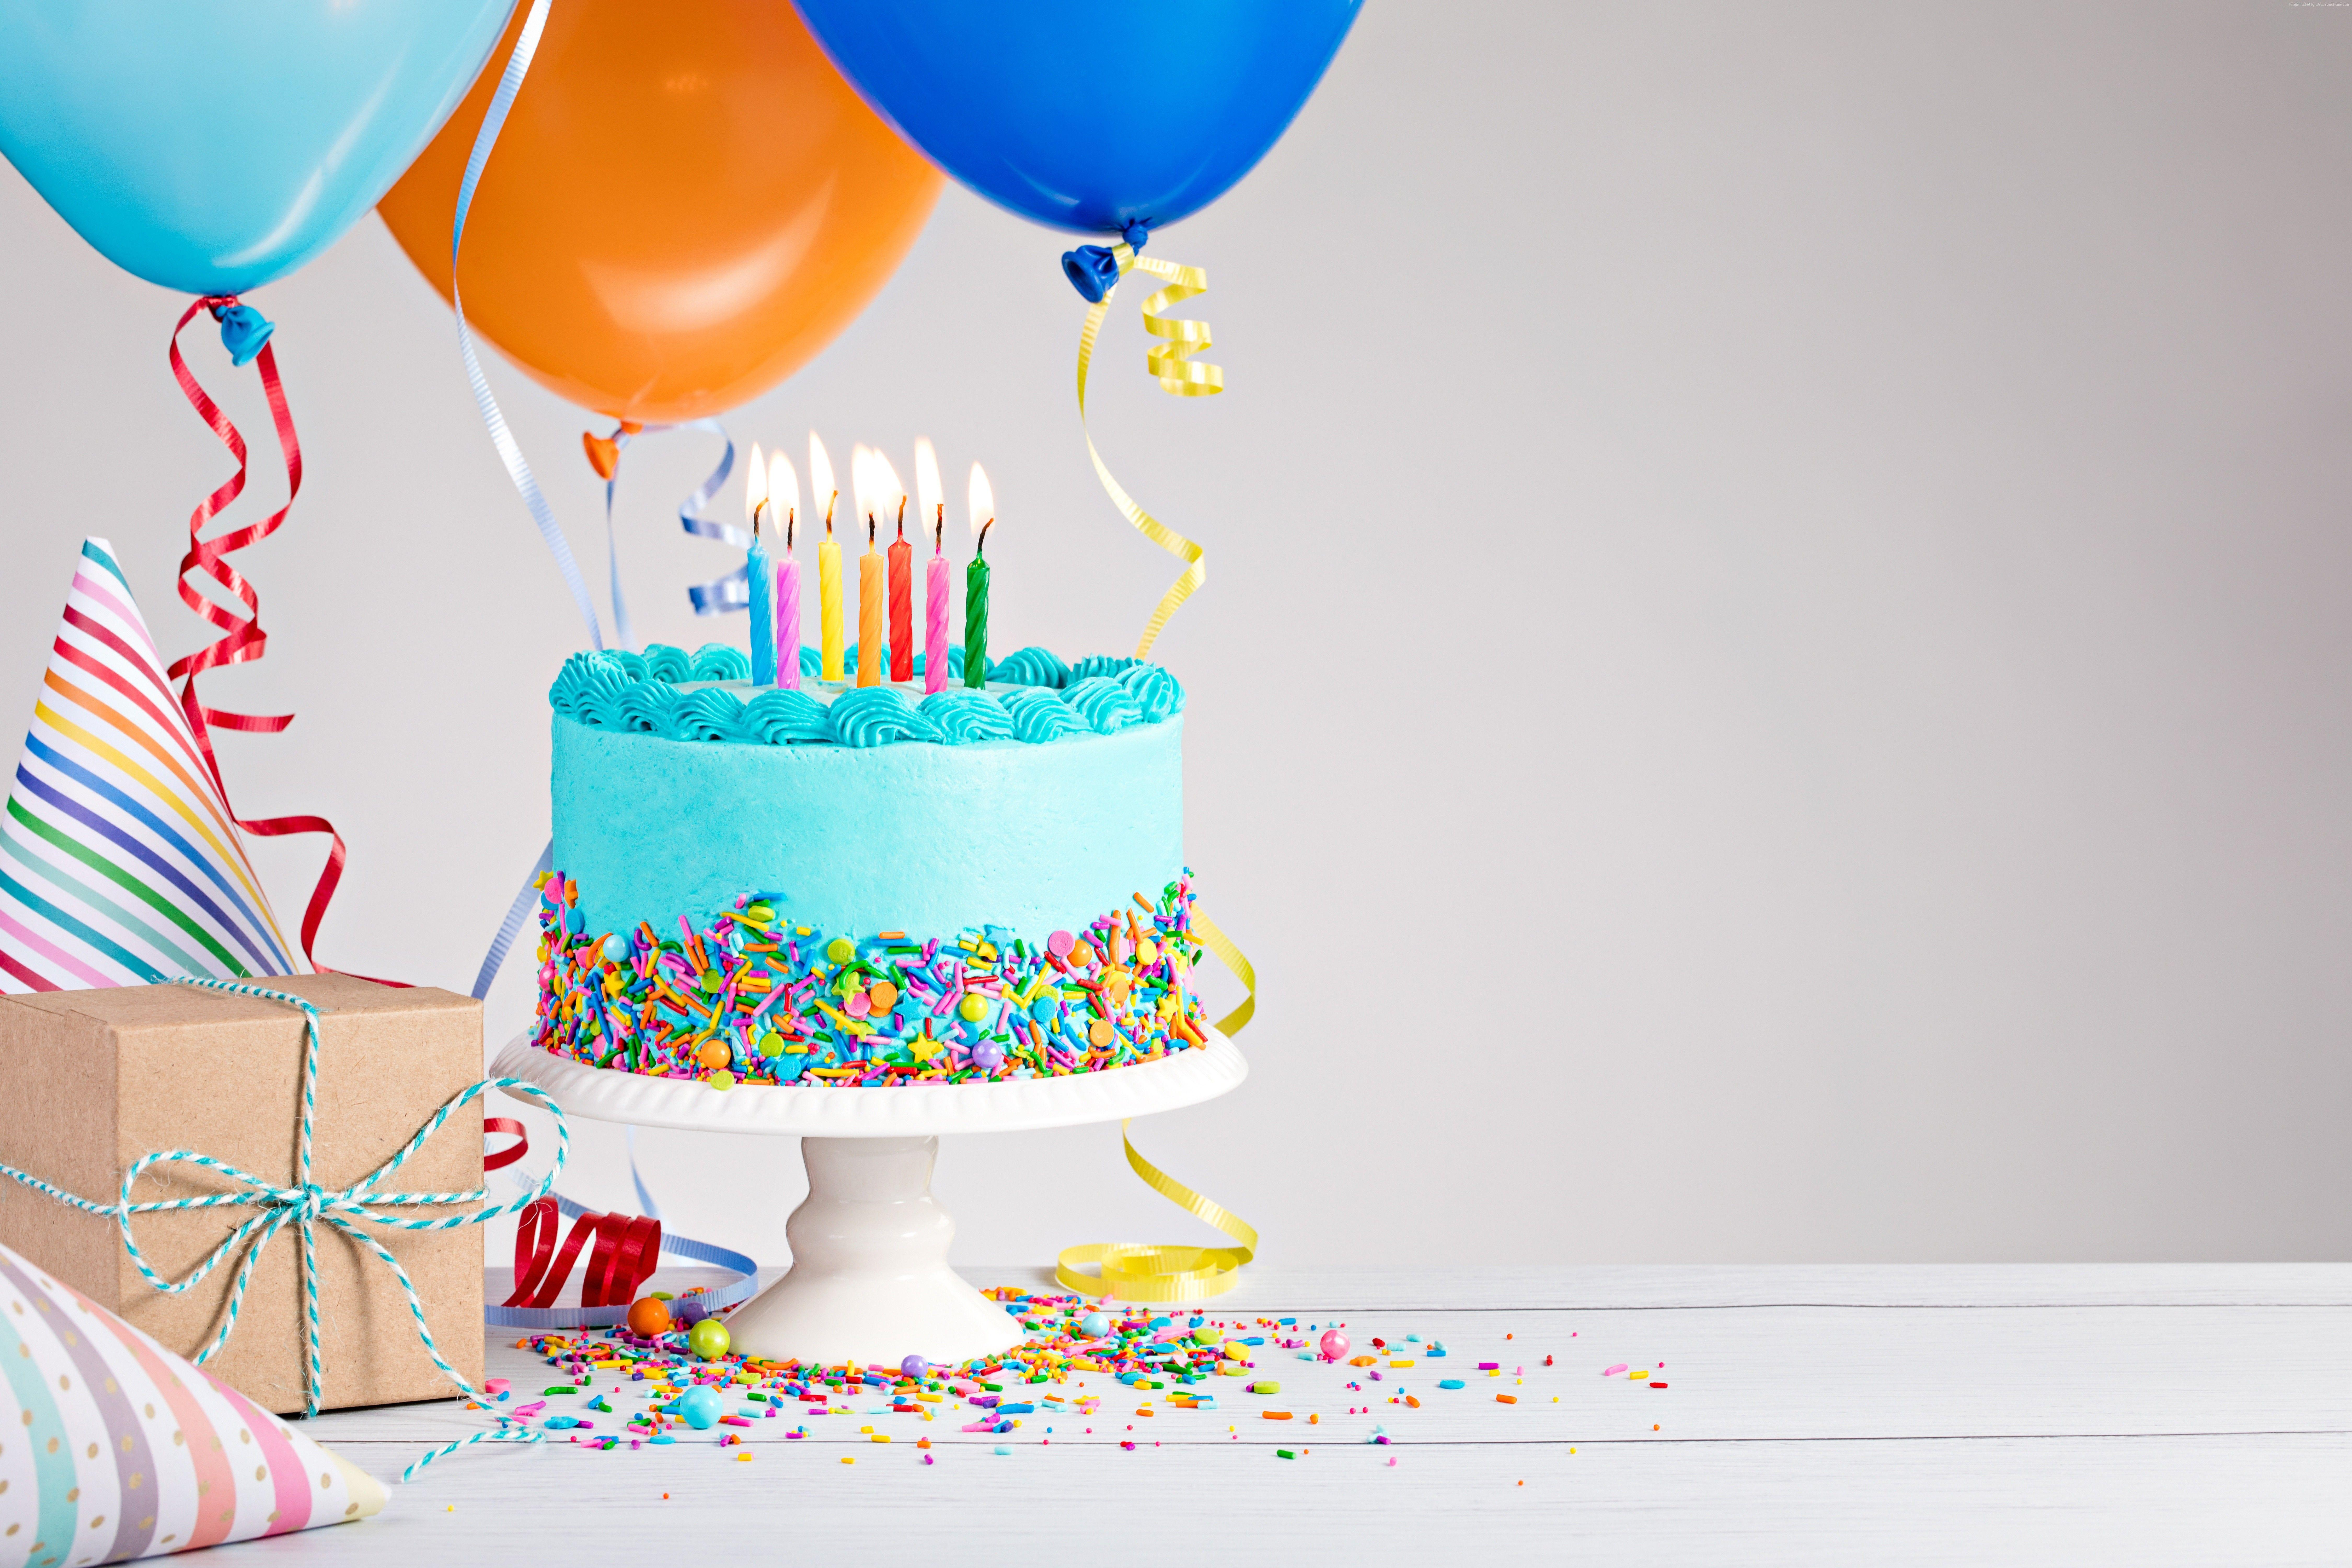 Birthday Wallpapers   Wallpaper Cave